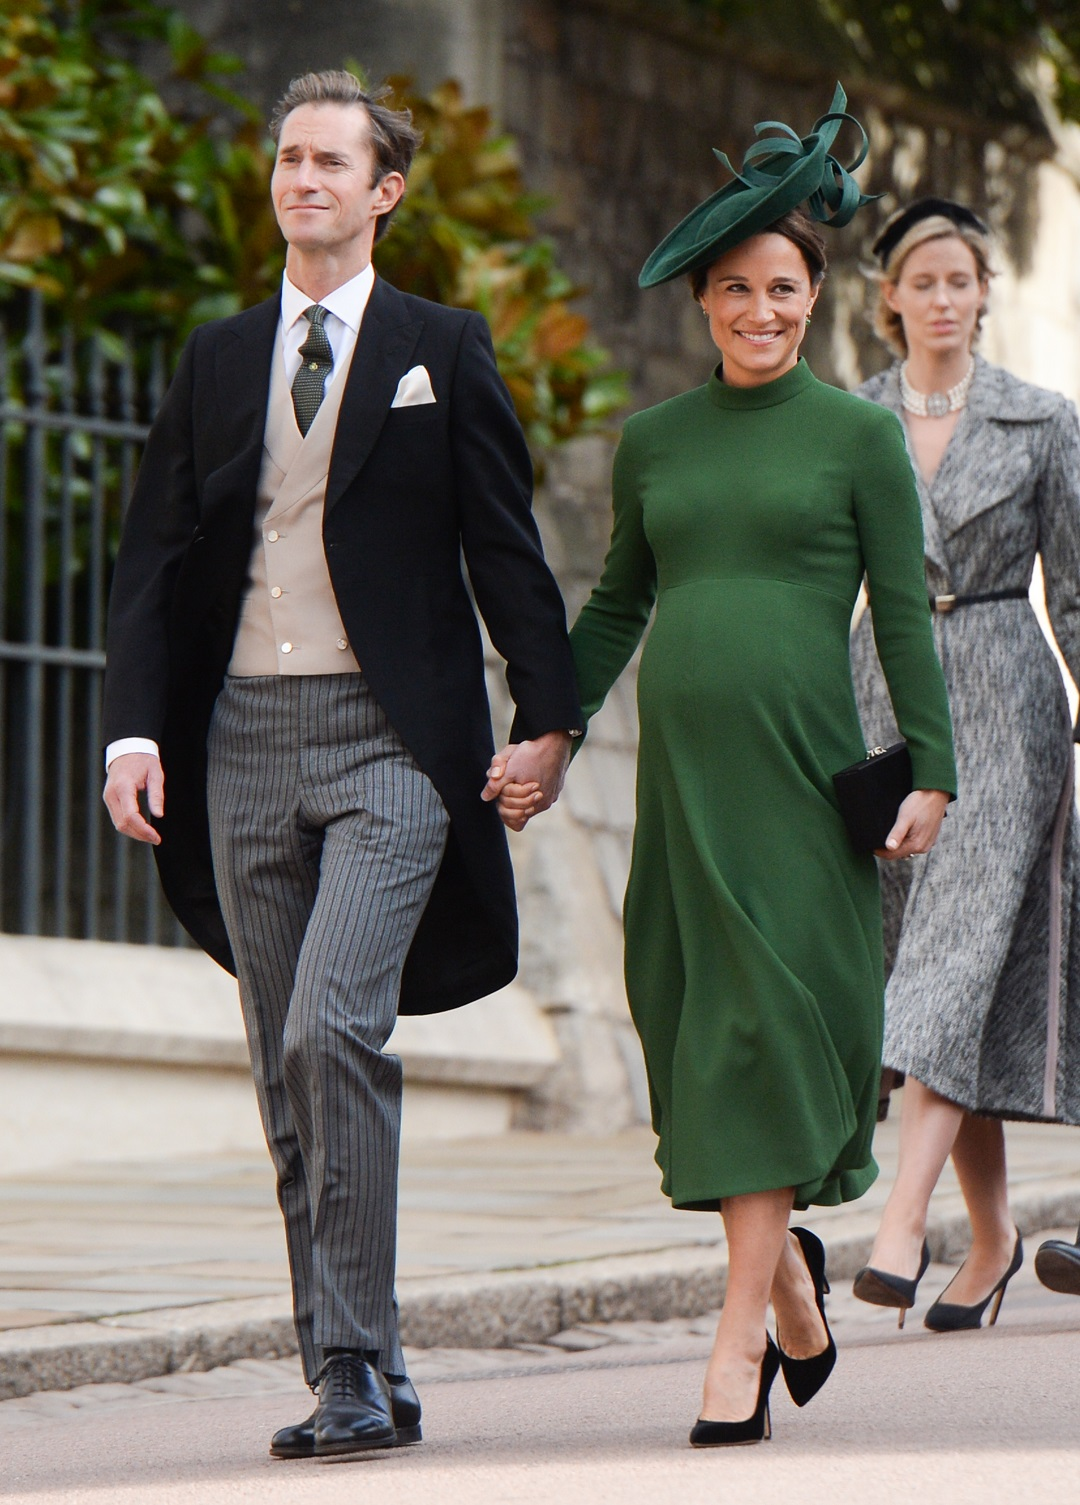 Pregnant Pippa Middleton Green Dress and Husband James Matthews